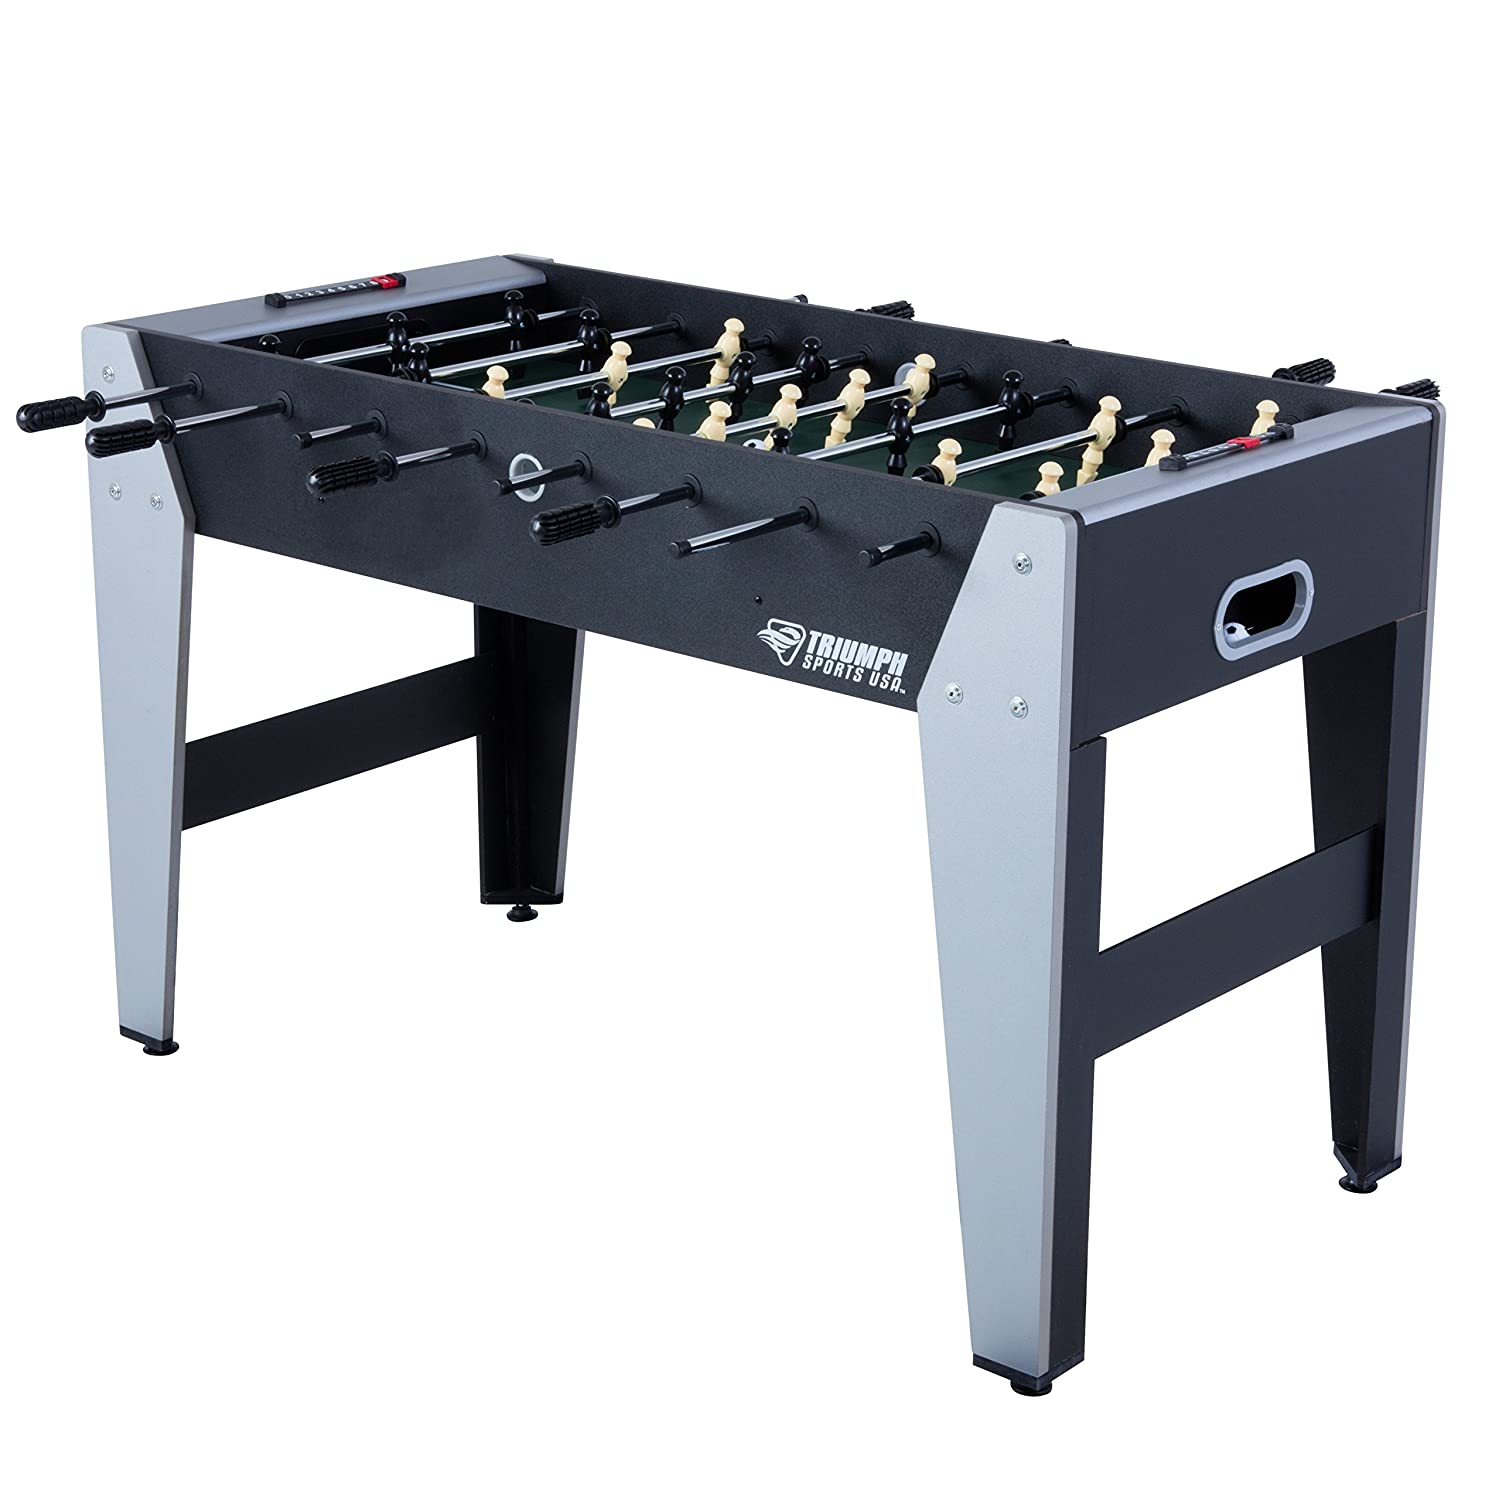 Triumph Sweeper 48 Foosball Table Escalade Sports 45-6071